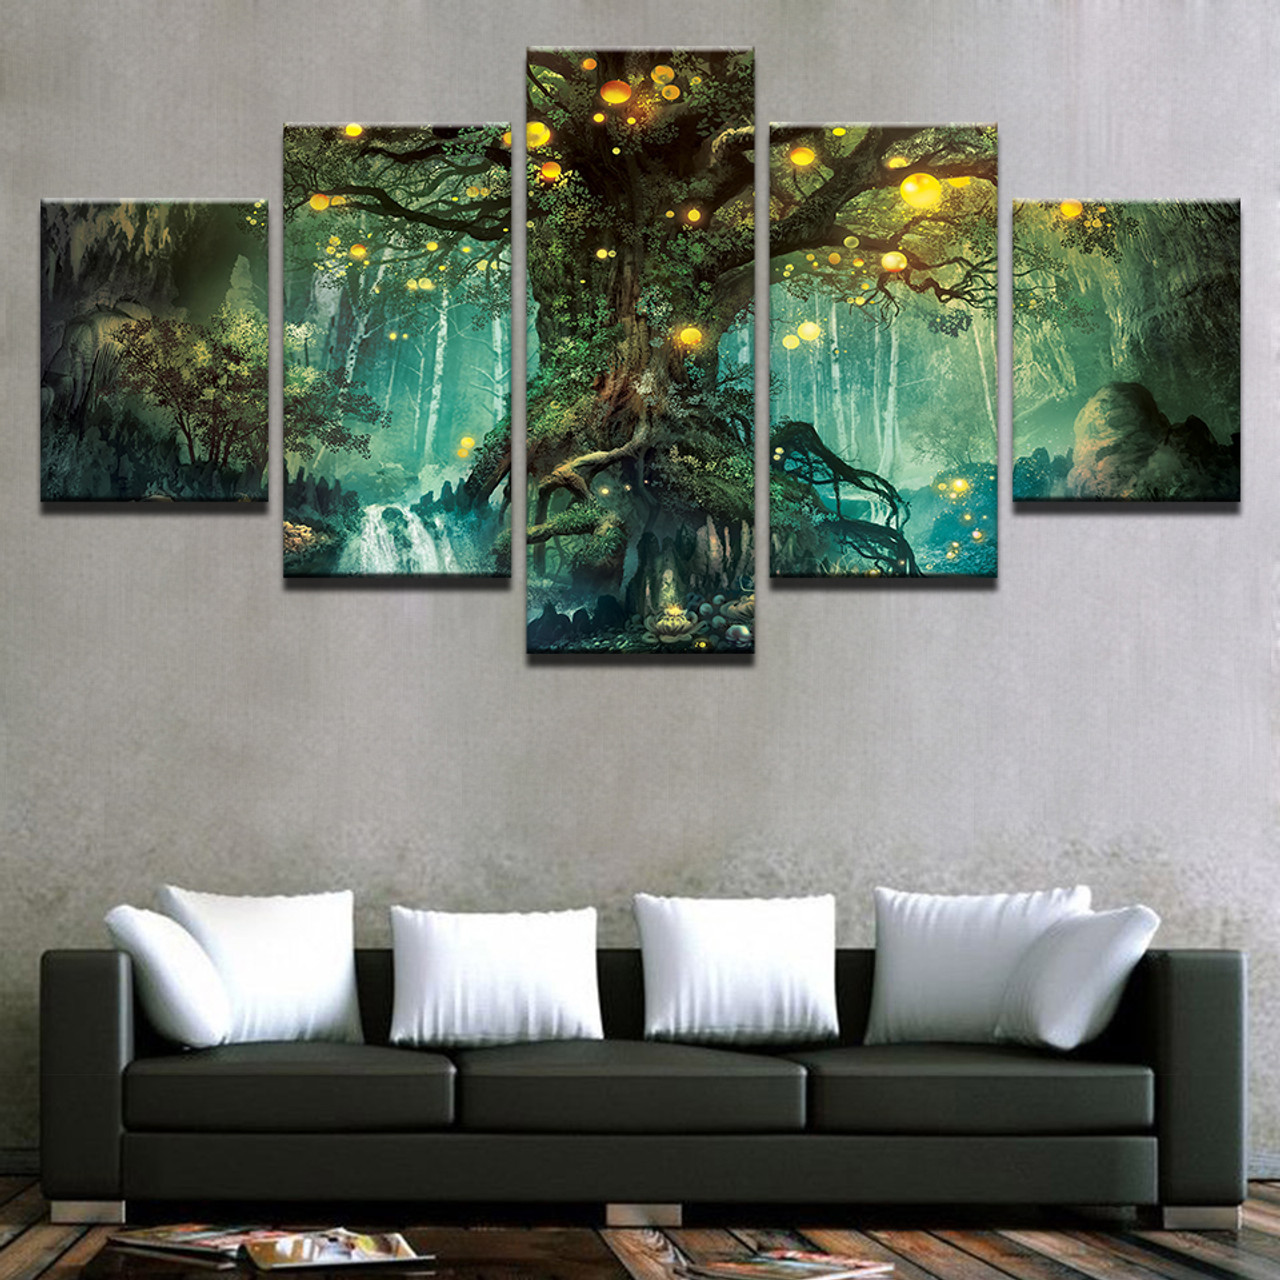 Canvas Wall Art Pictures Frames Living Room 5 Pieces Enchanted Tree Scenery Paintings Home Decor Hd Printed Magic Forest Posters Onshopdeals Com